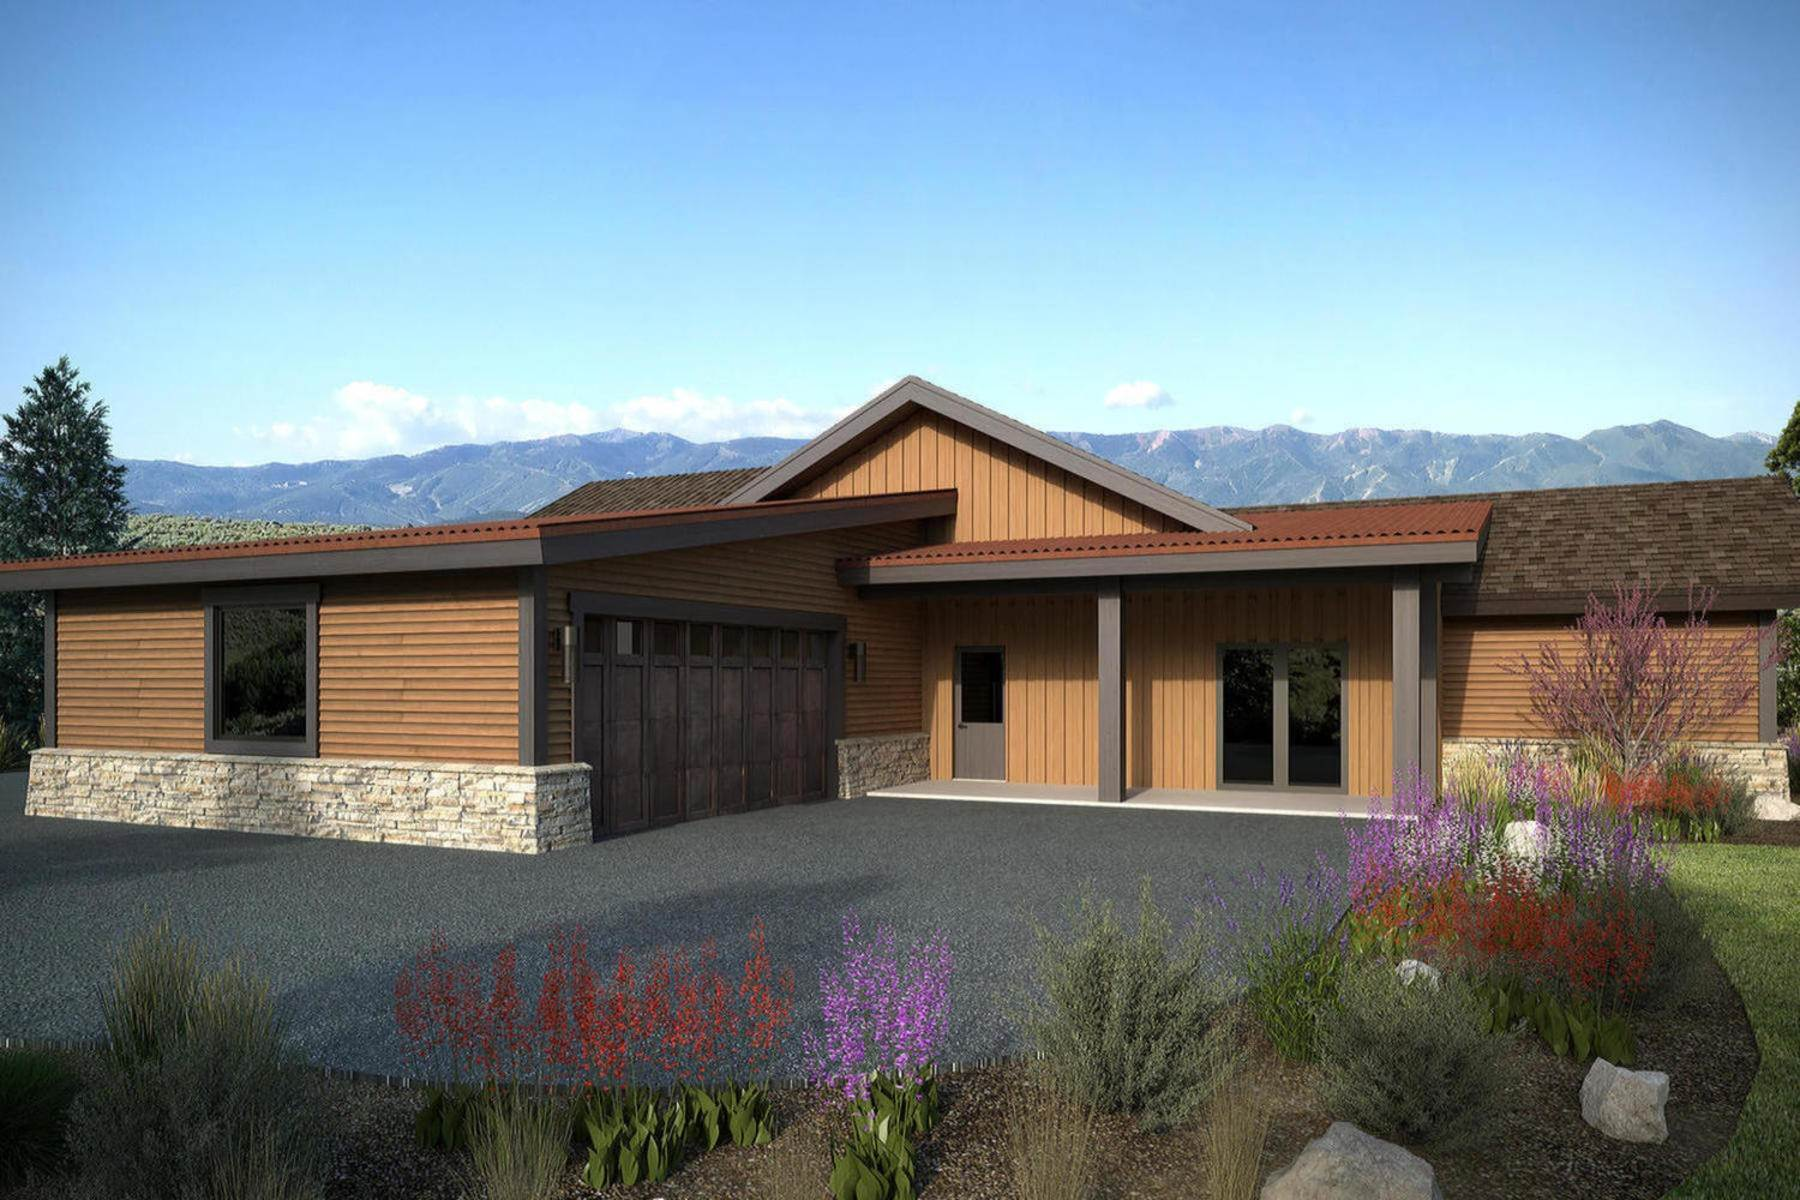 Single Family Homes for Sale at The Gateway Rambler At High Star Ranch With Spectacular Views 366 Big Meadow Drive Kamas, Utah 84036 United States